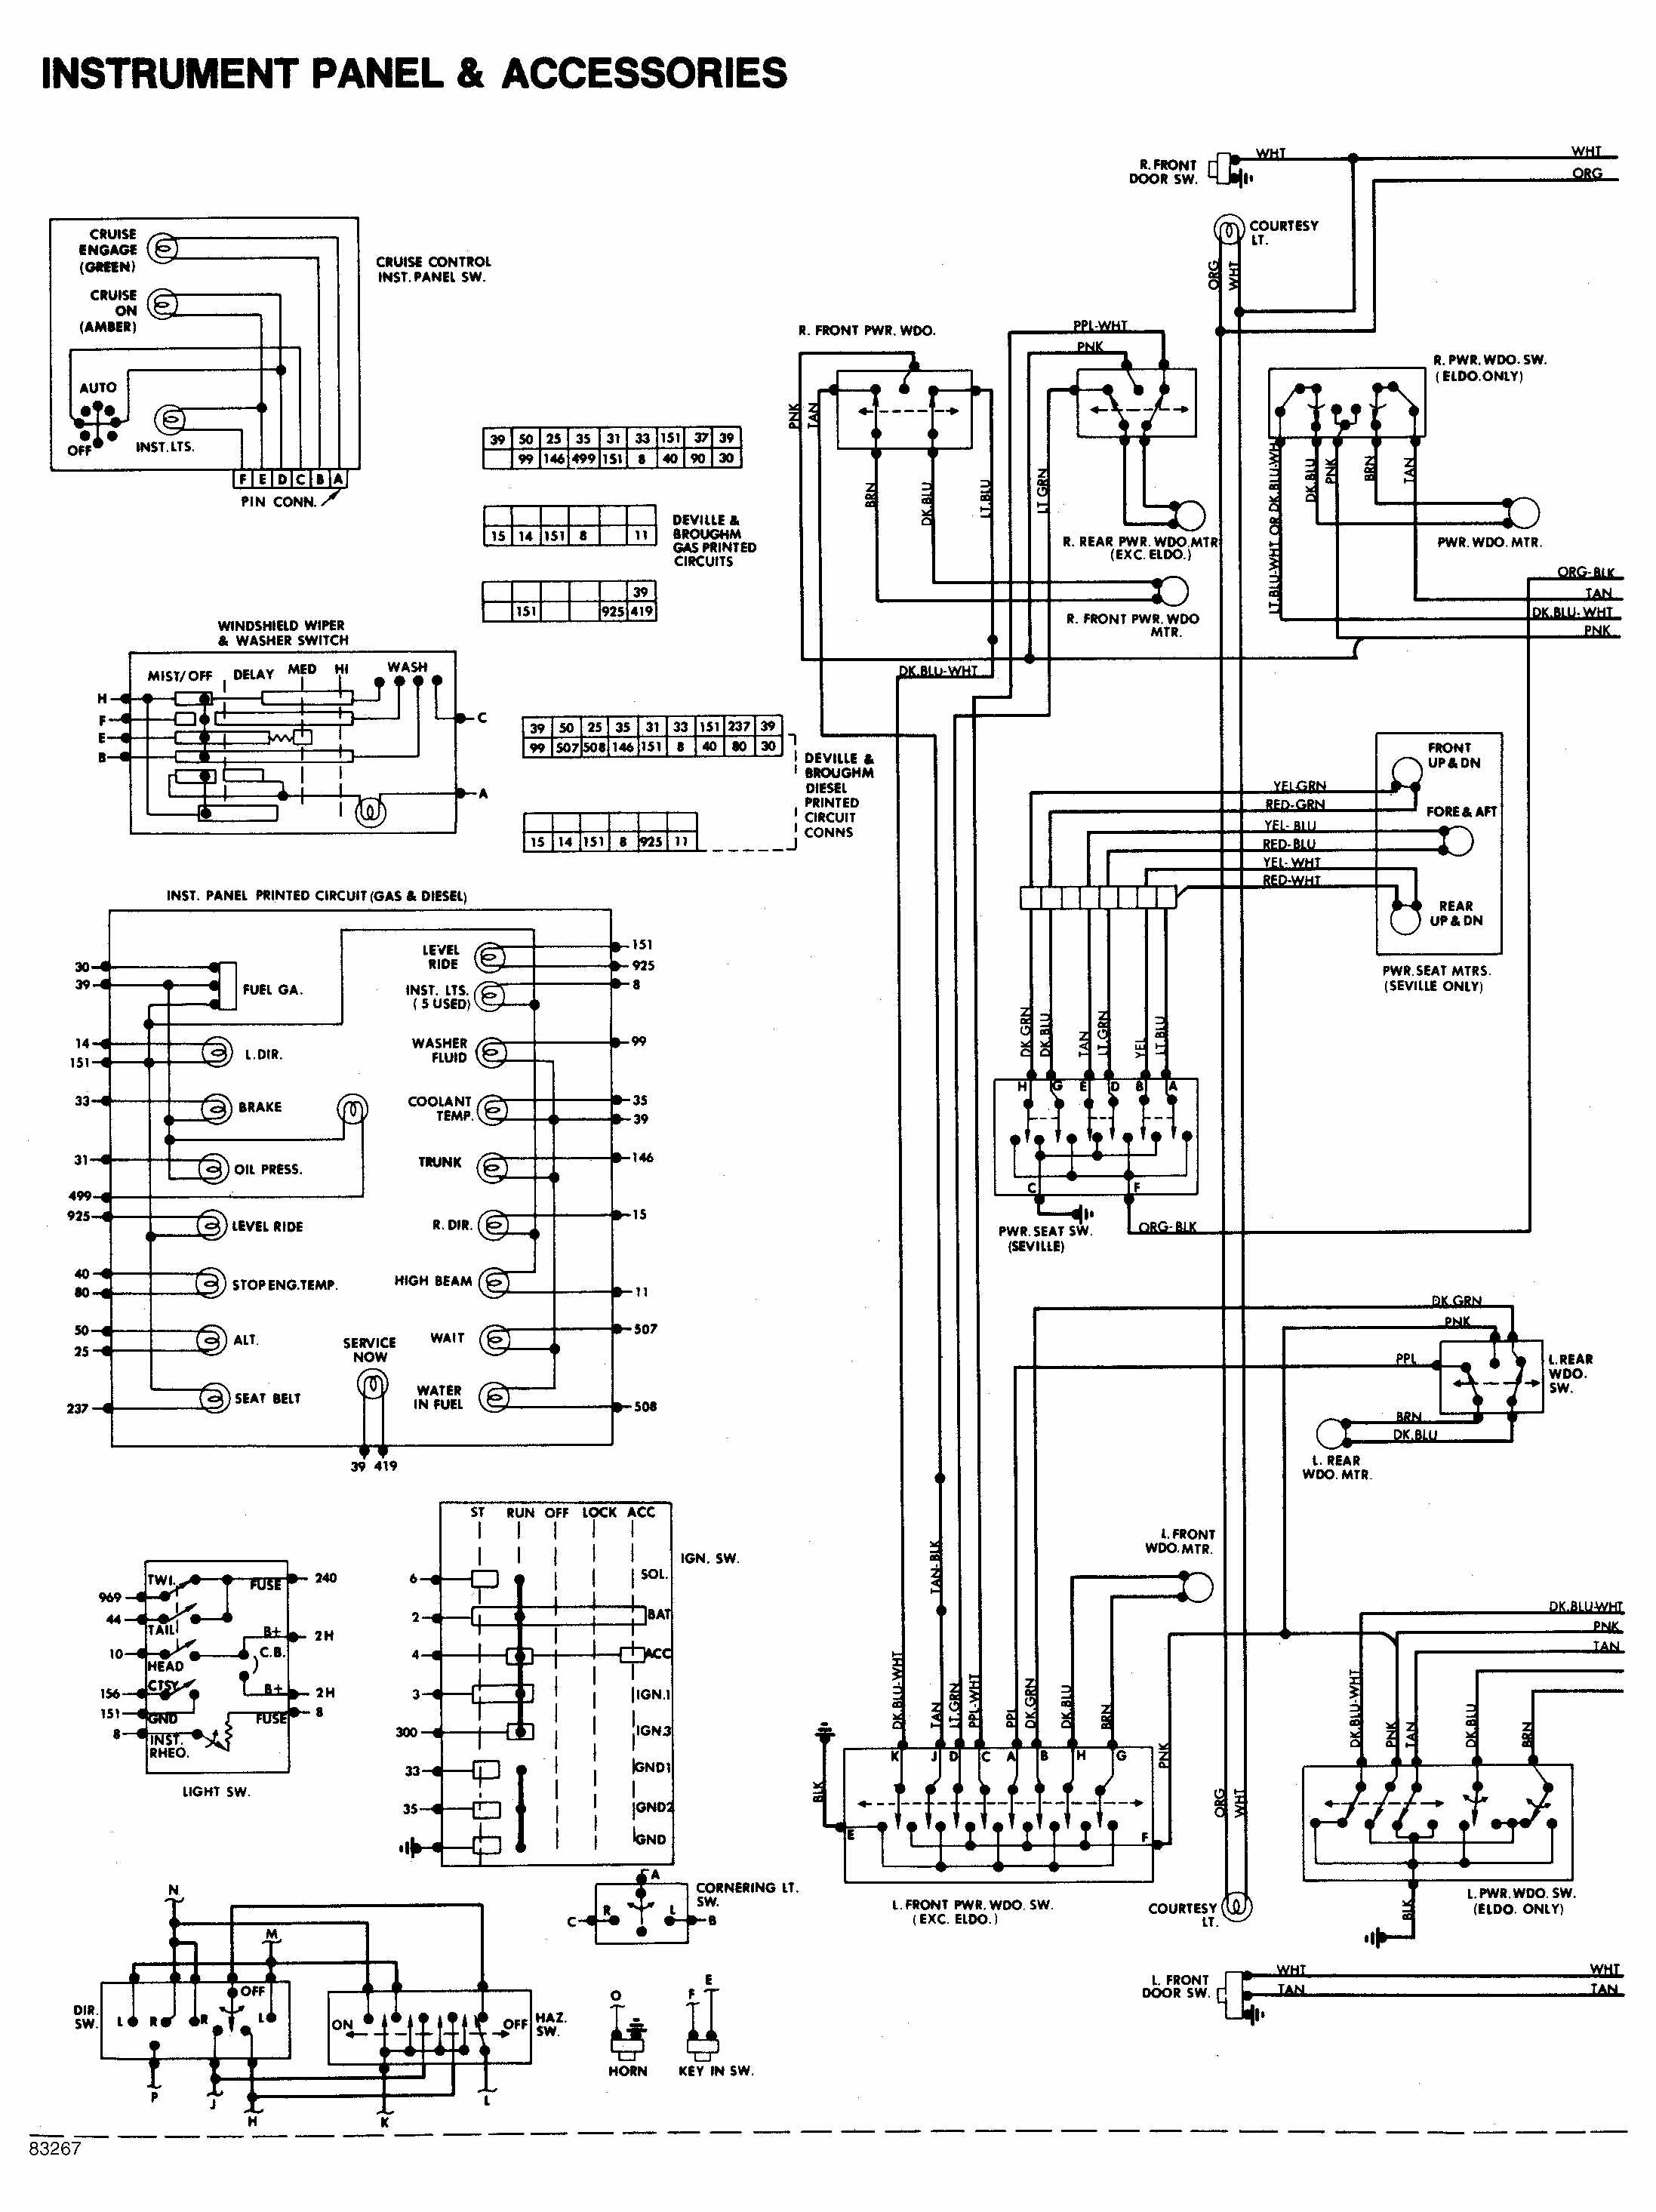 instrument panel and accessories wiring diagram of 1984 cadillac deville chevy diagrams 1996 cadillac deville wiring schematics at crackthecode.co